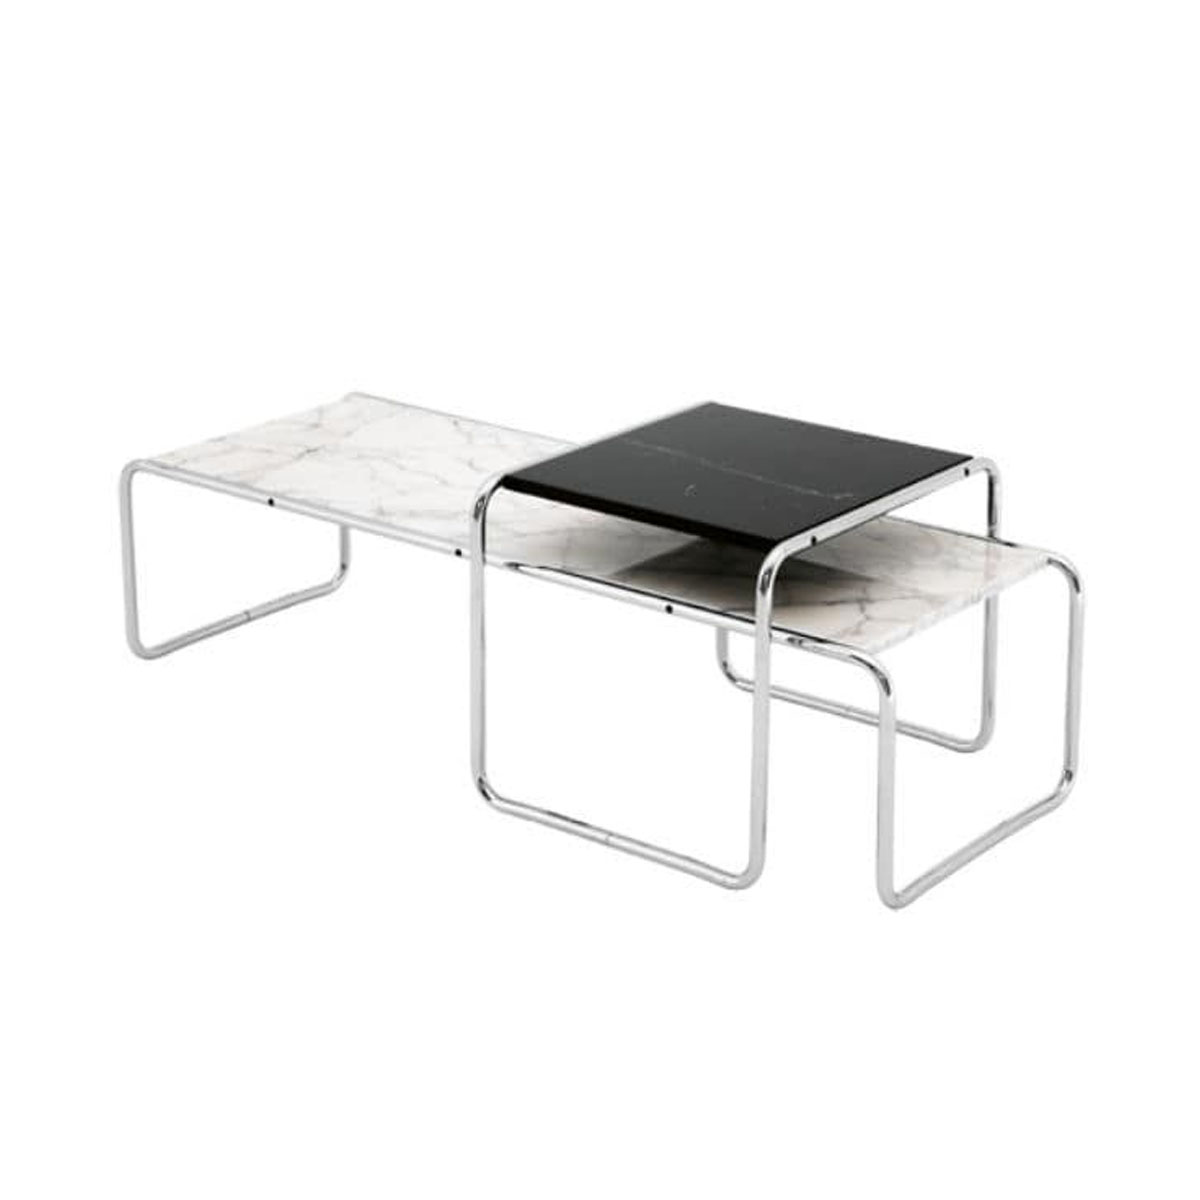 table basse knoll table basse rectangulaire laccio. Black Bedroom Furniture Sets. Home Design Ideas